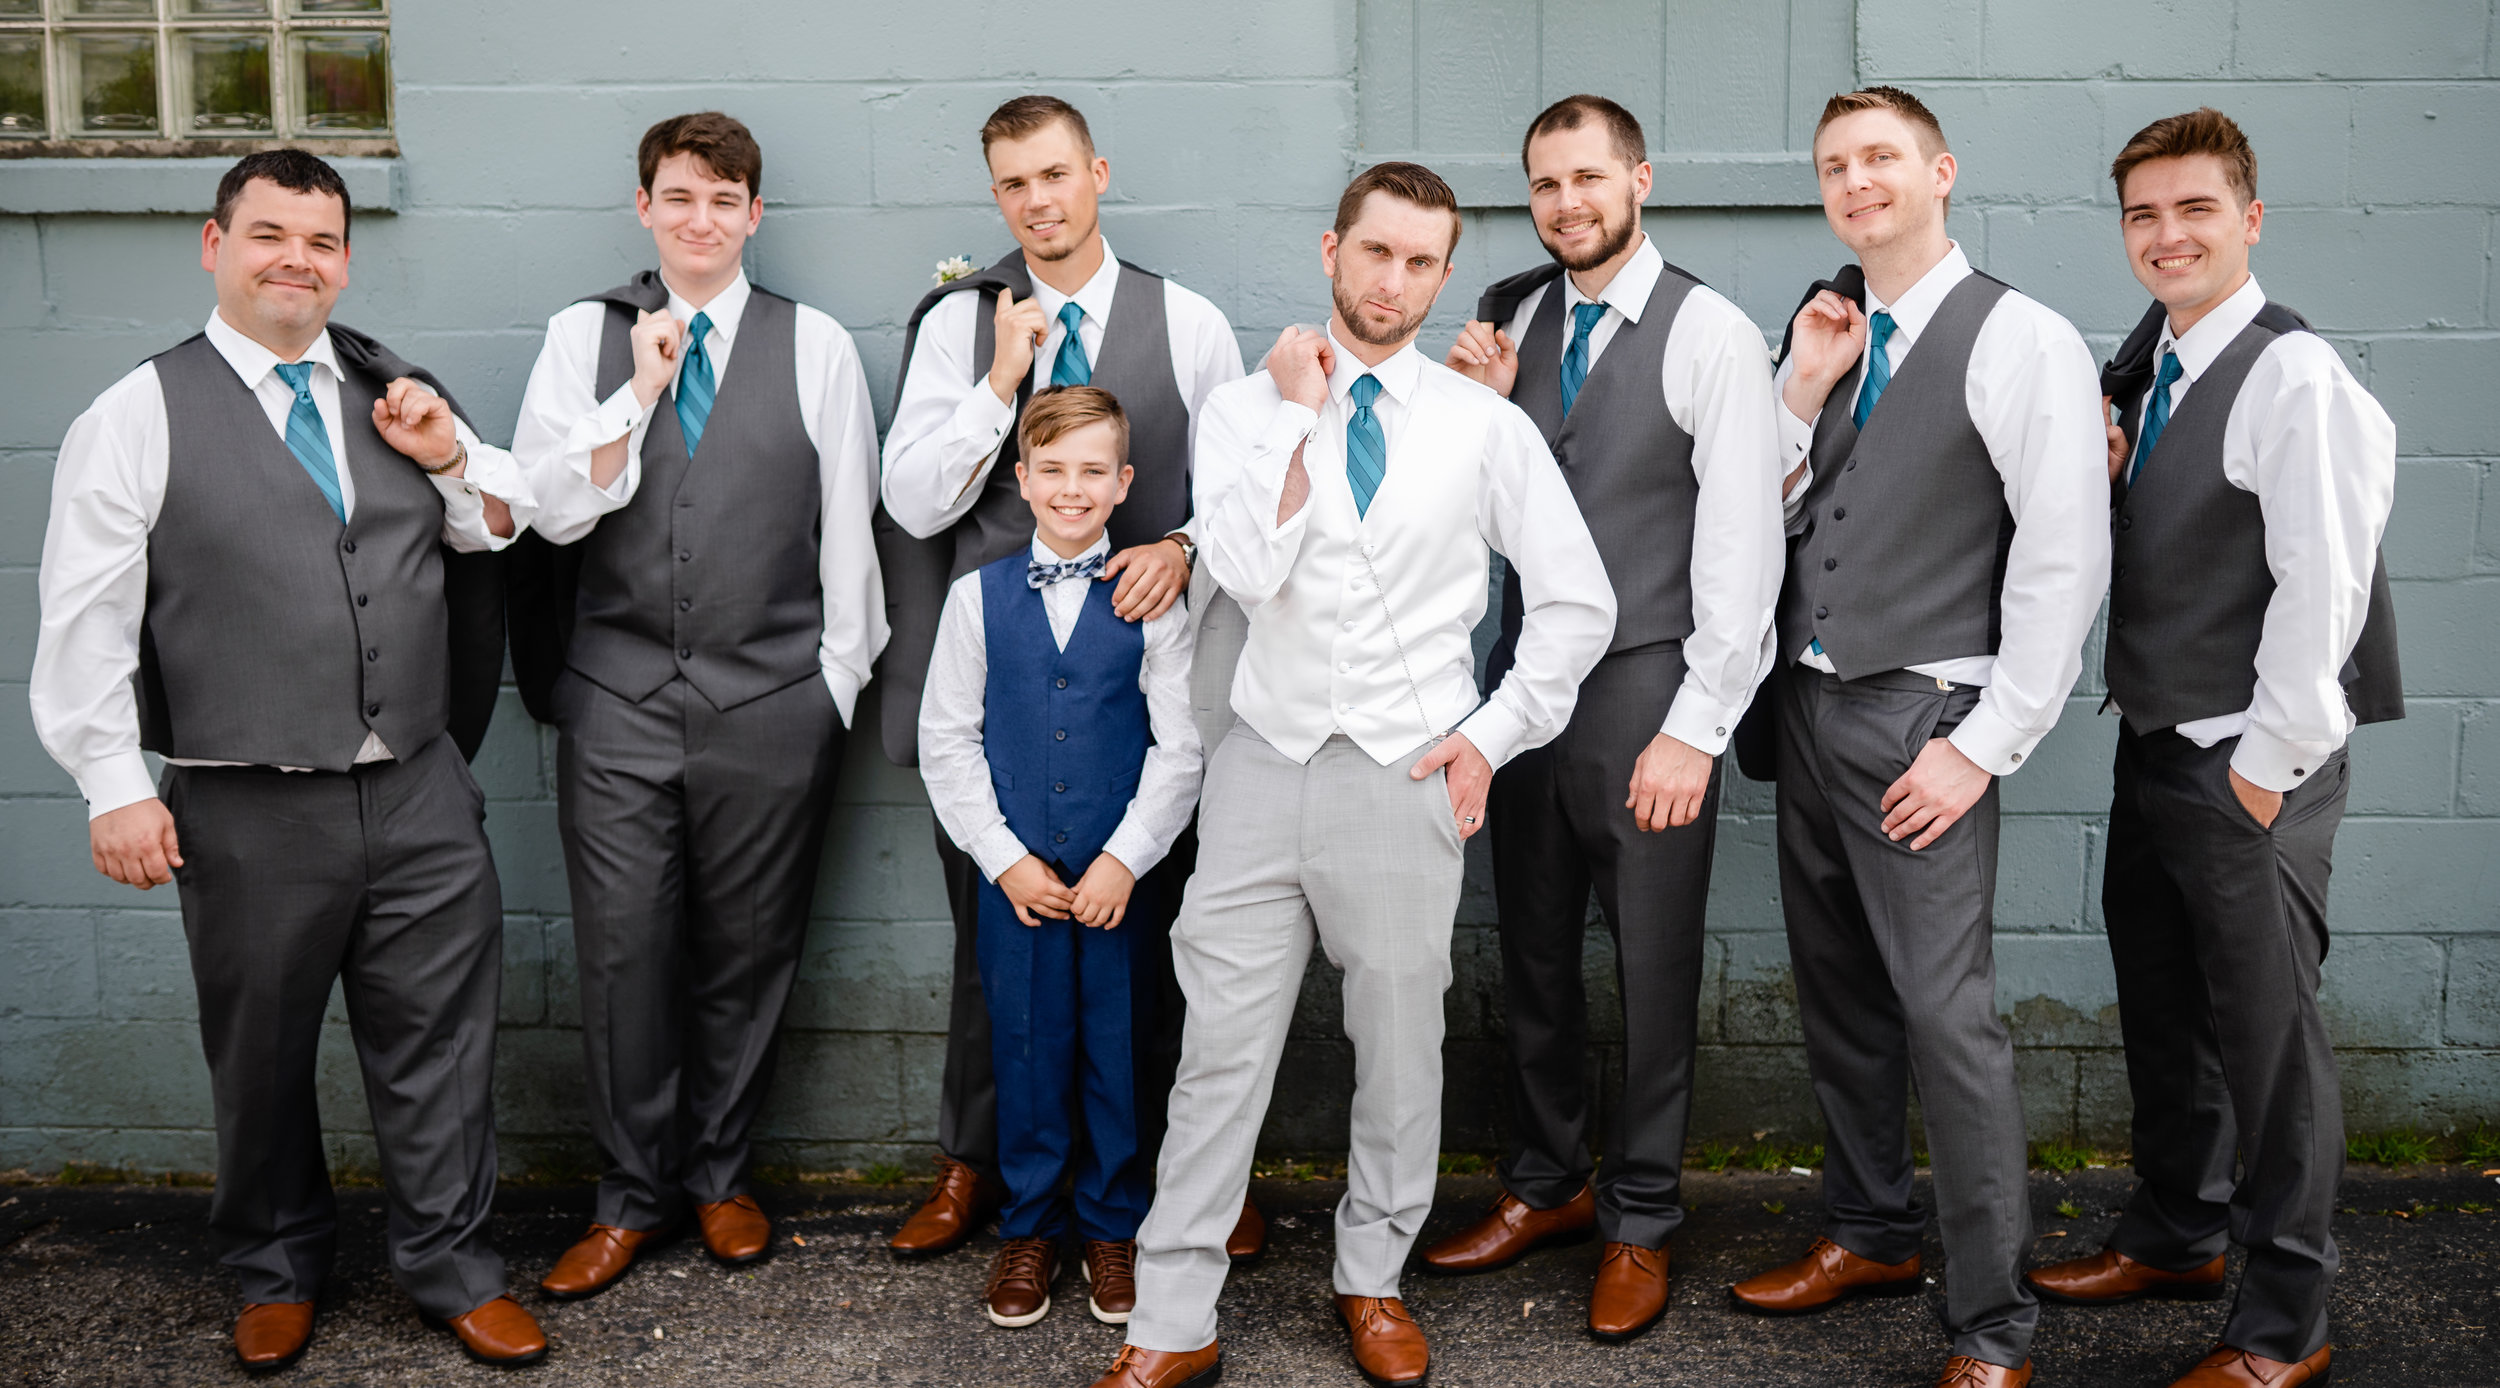 groom-and-groomsmen-power-pose-turquoise-ties-grey-vests-cinder-block-wall.jpg